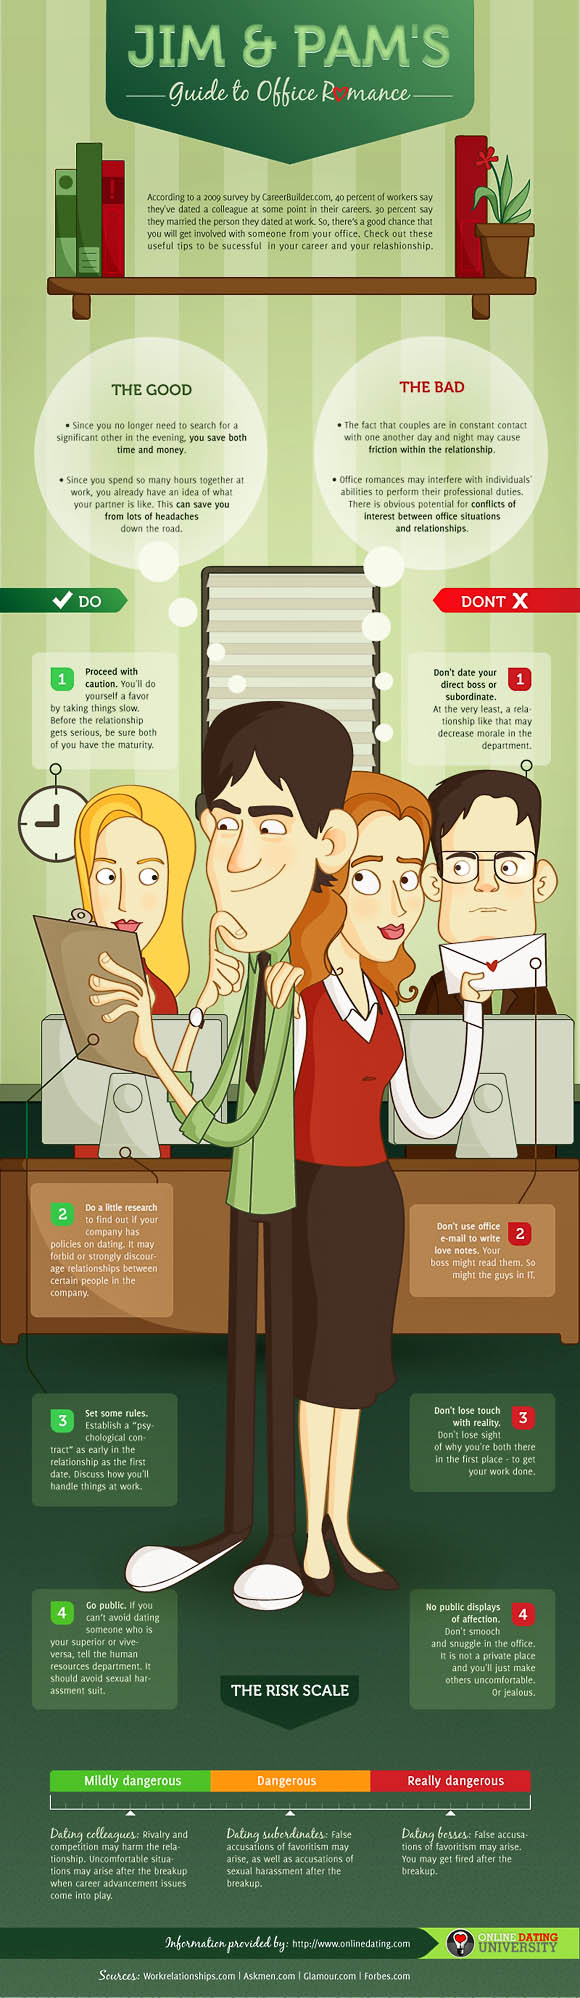 office dating infographic